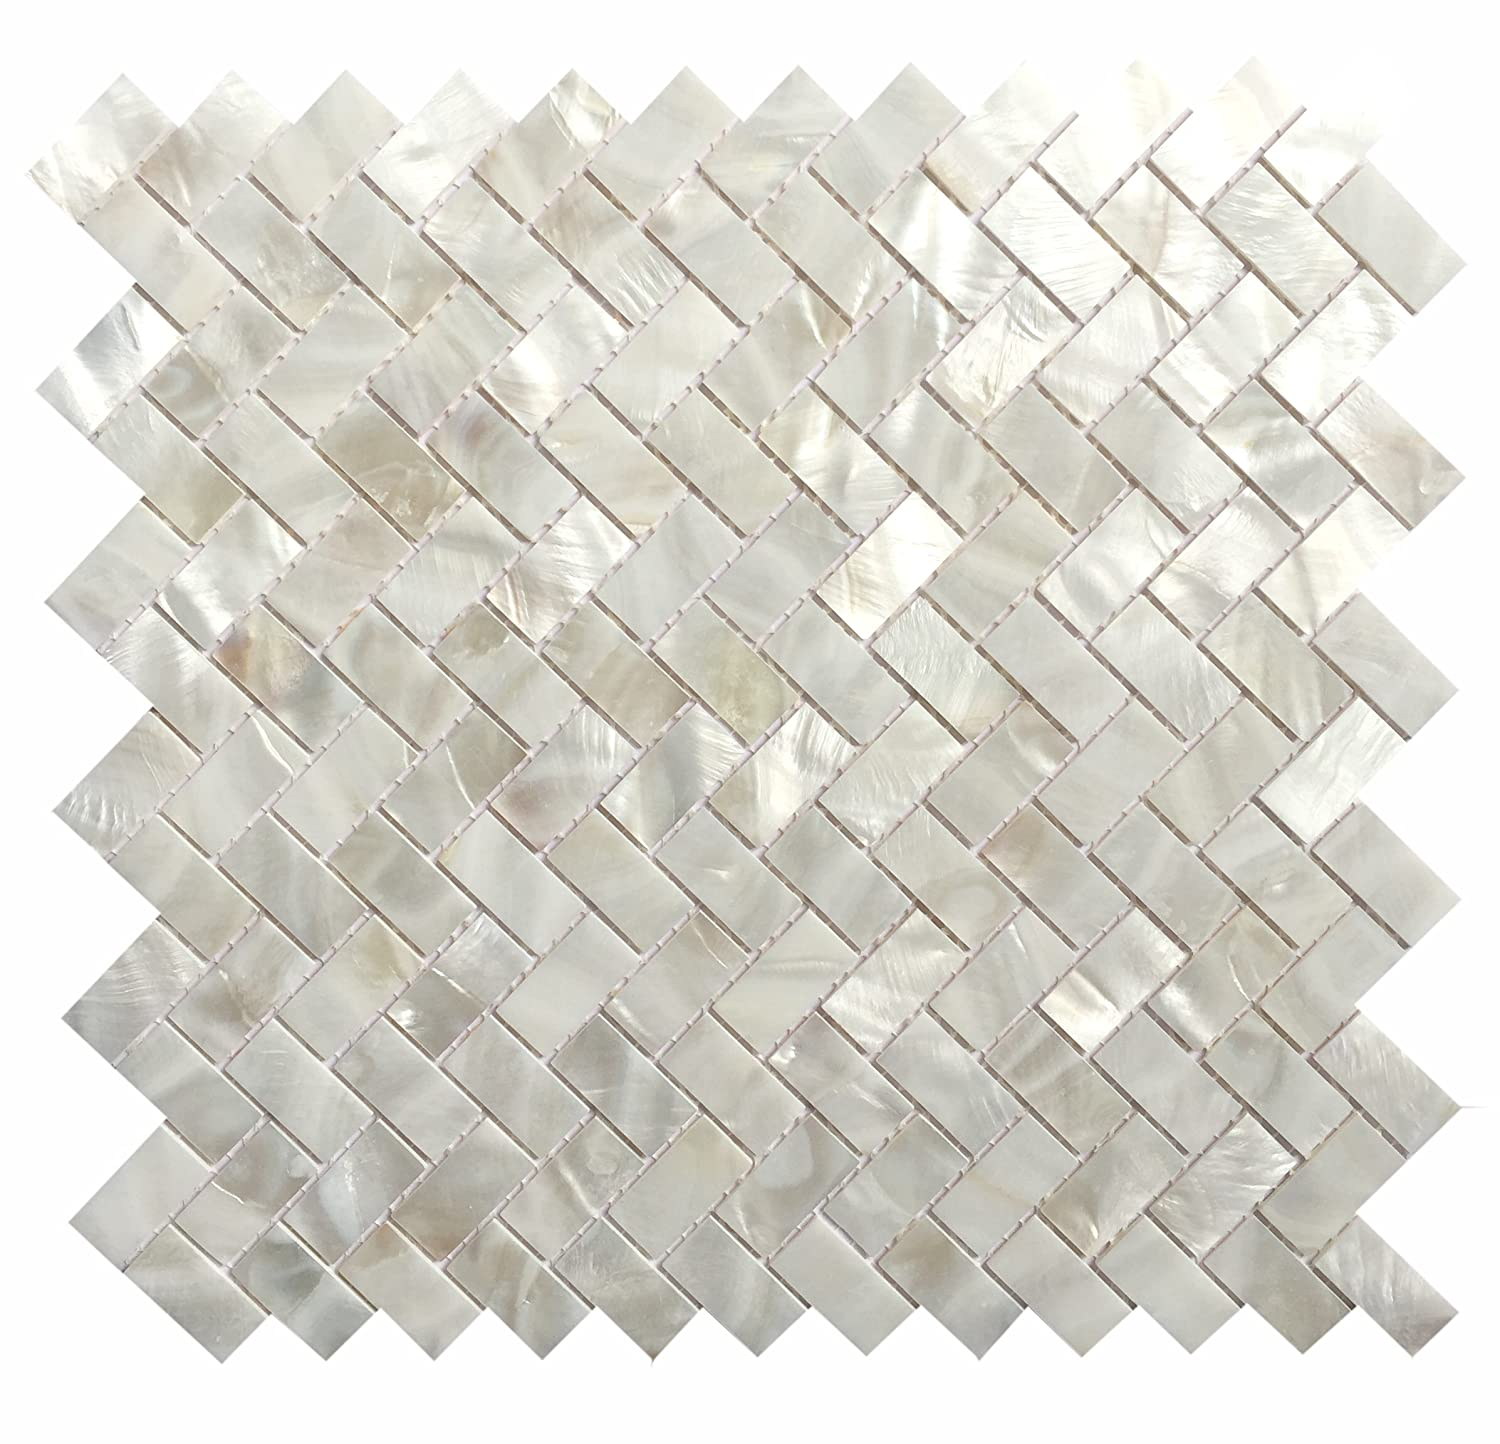 Genuine Mother of Pearl Oyster Herringbone Shell Mosaic Tile for Kitchen Backsplashes, Bathroom Walls, Spas, Pools by Vogue Tile (Pack of 5 Sheets) MOPH1X2